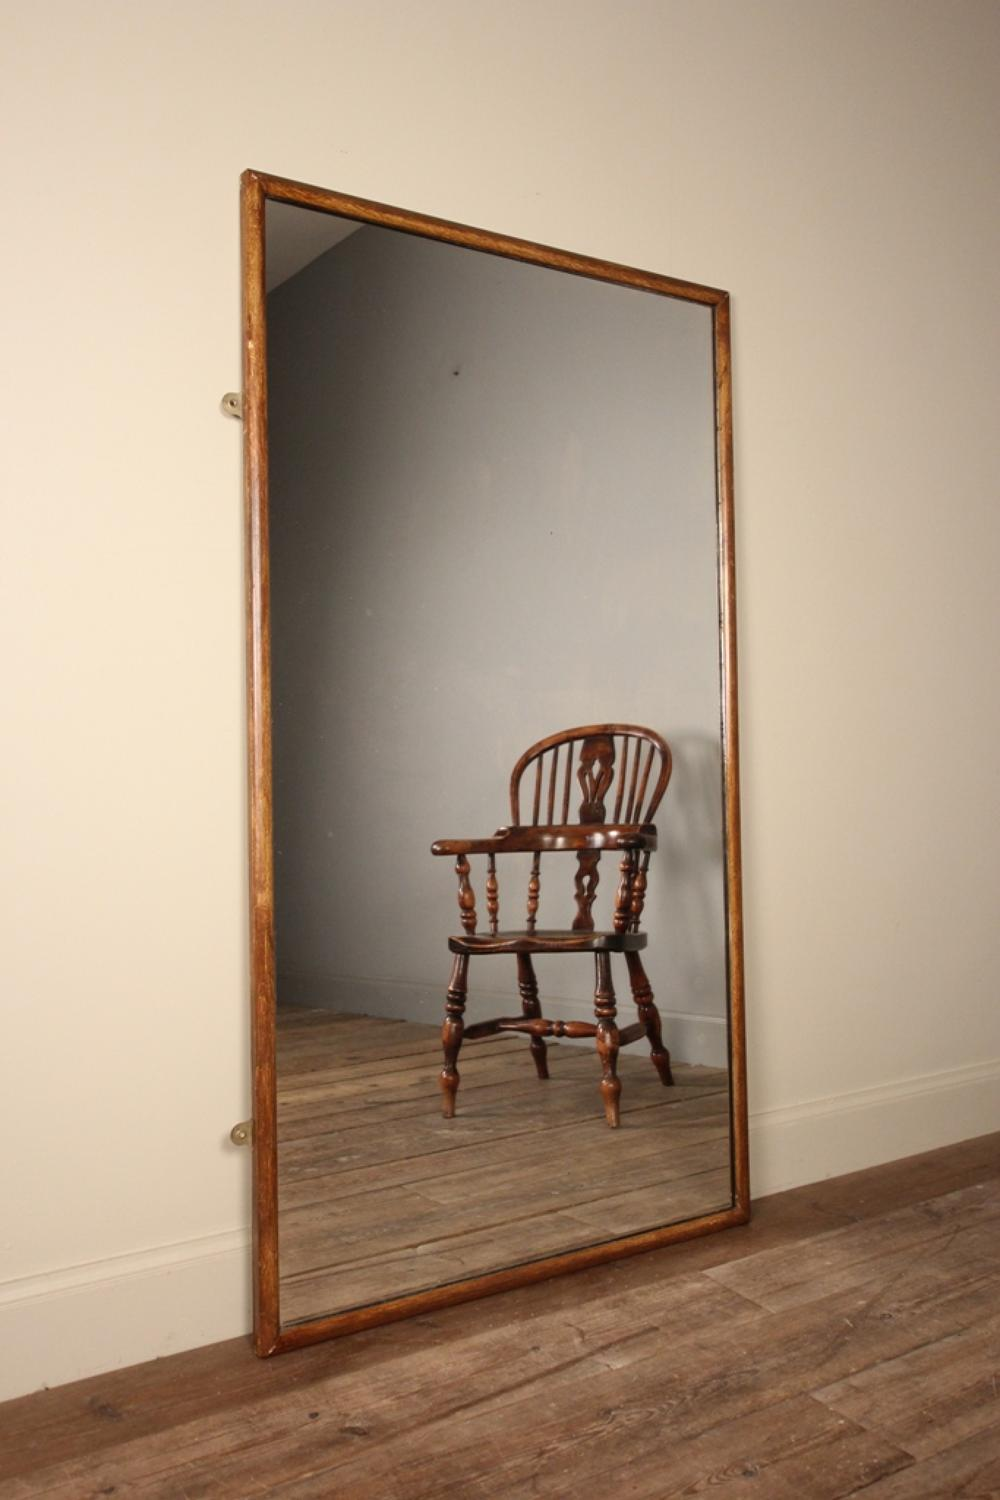 Stylish Outfitters Mirror with Original Paint